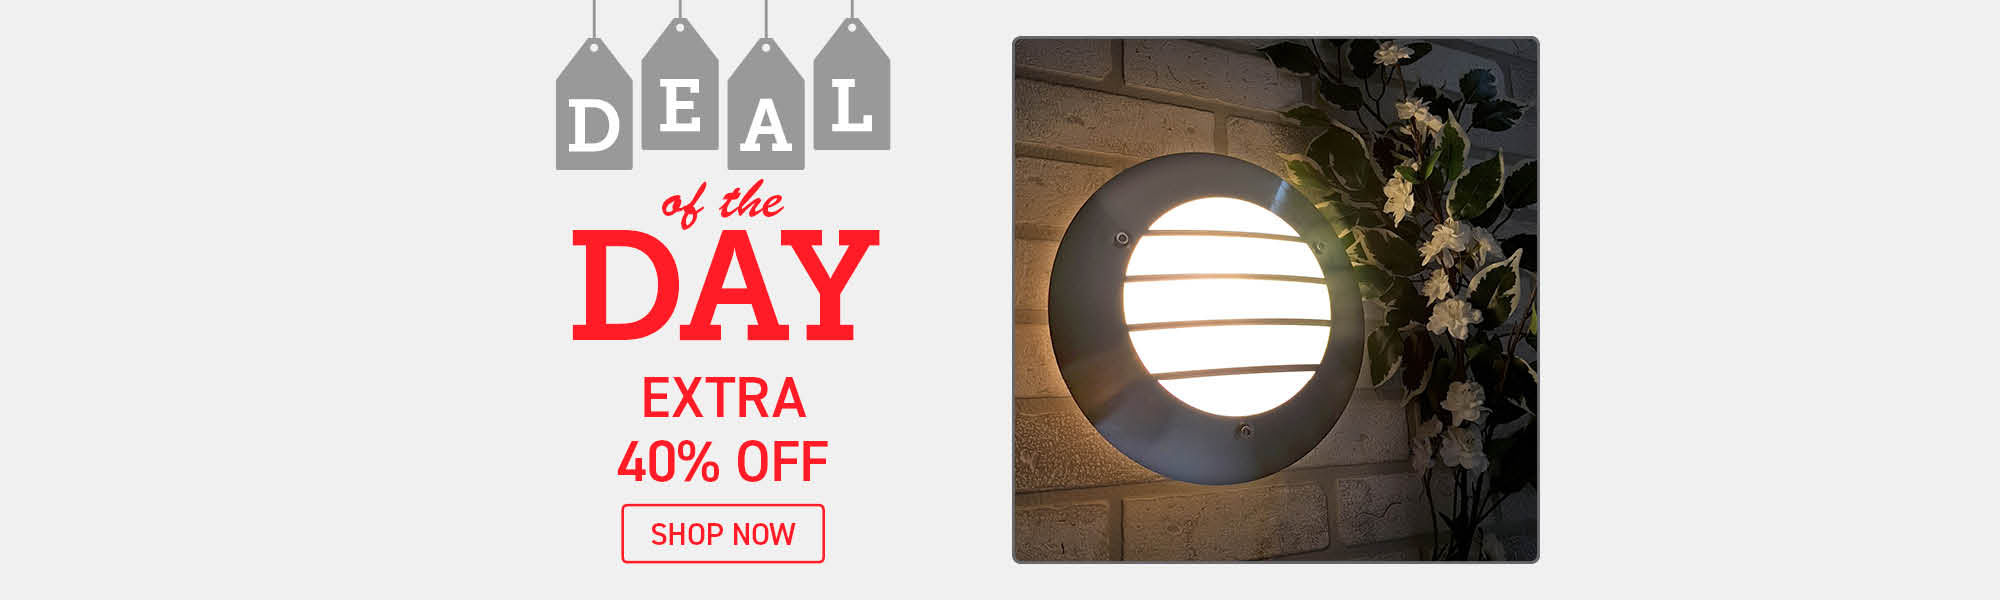 Deal of the Day - Extra 40% Off - Shop Now